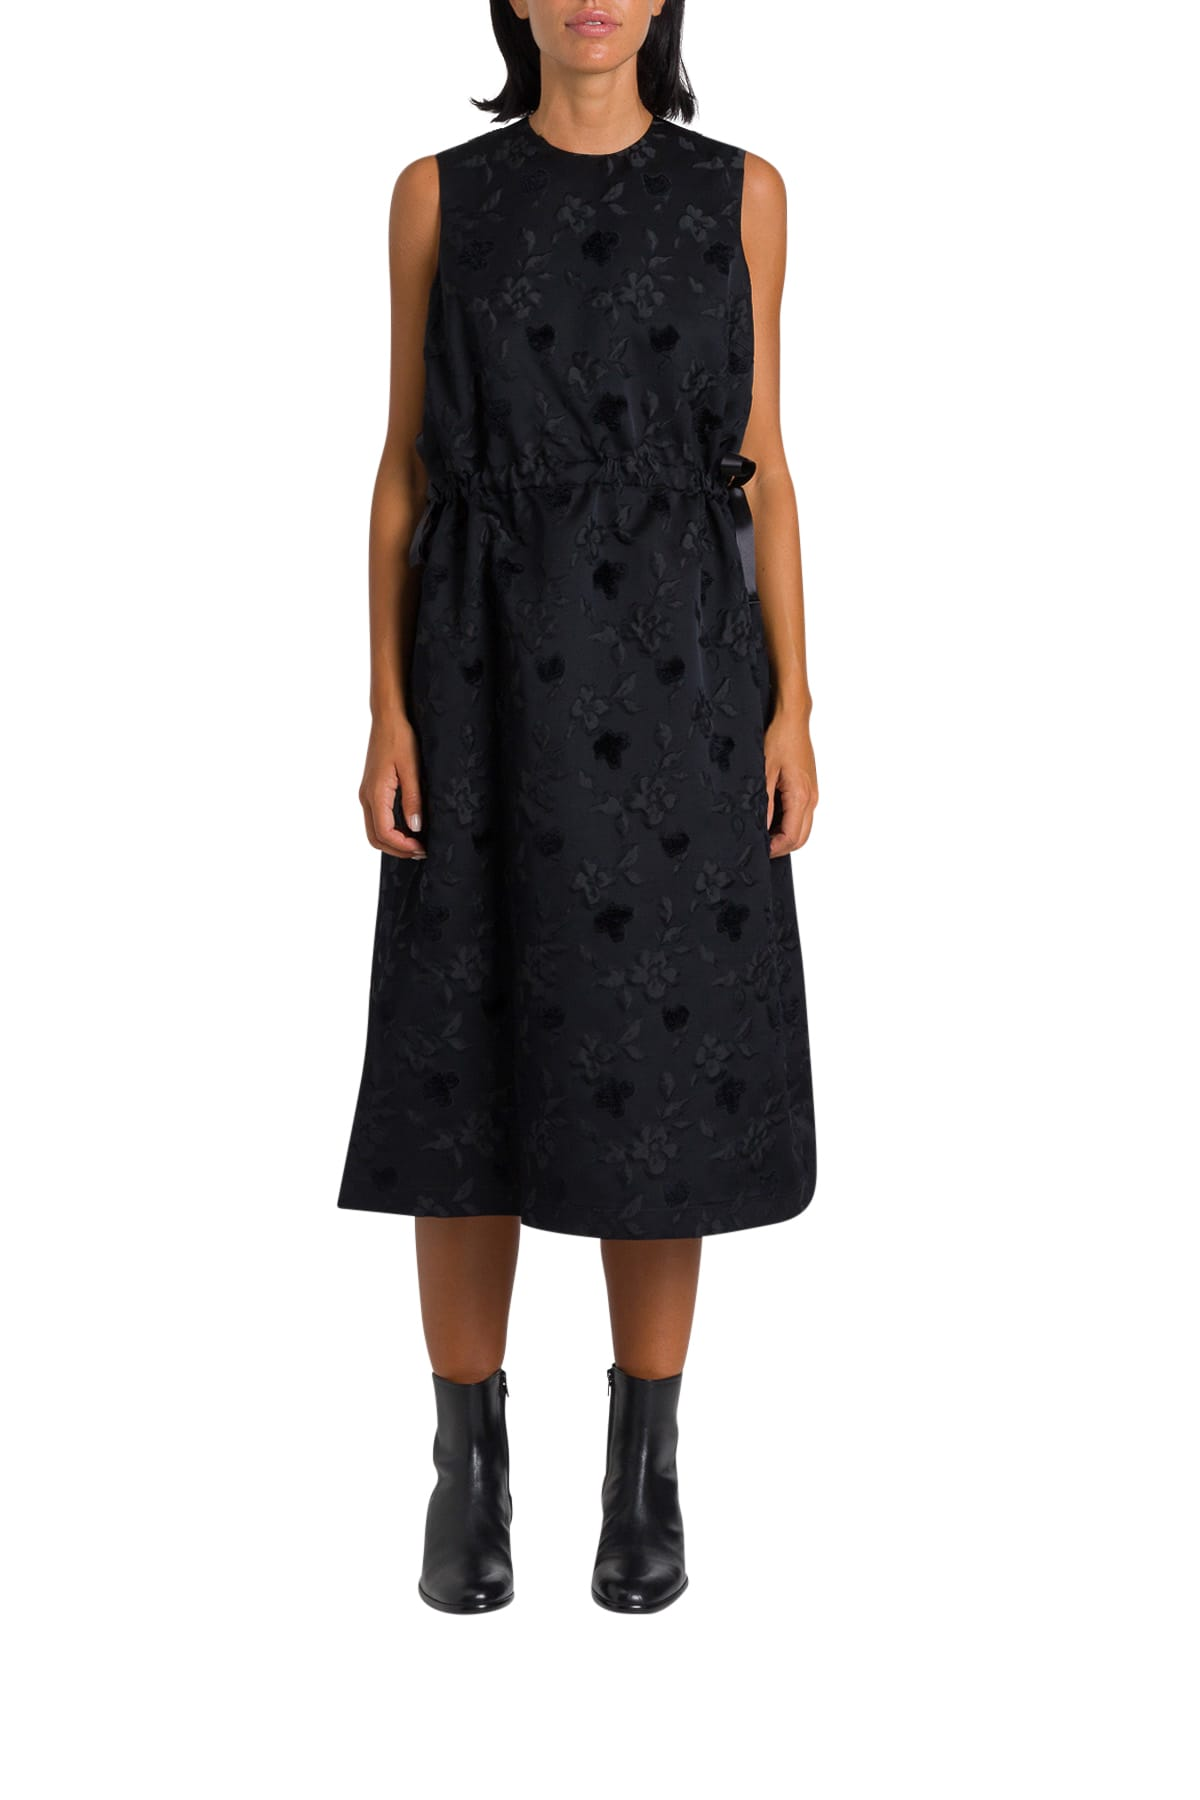 Noir Kei Ninomiya Jacquard Dress With Tulle Underskirt